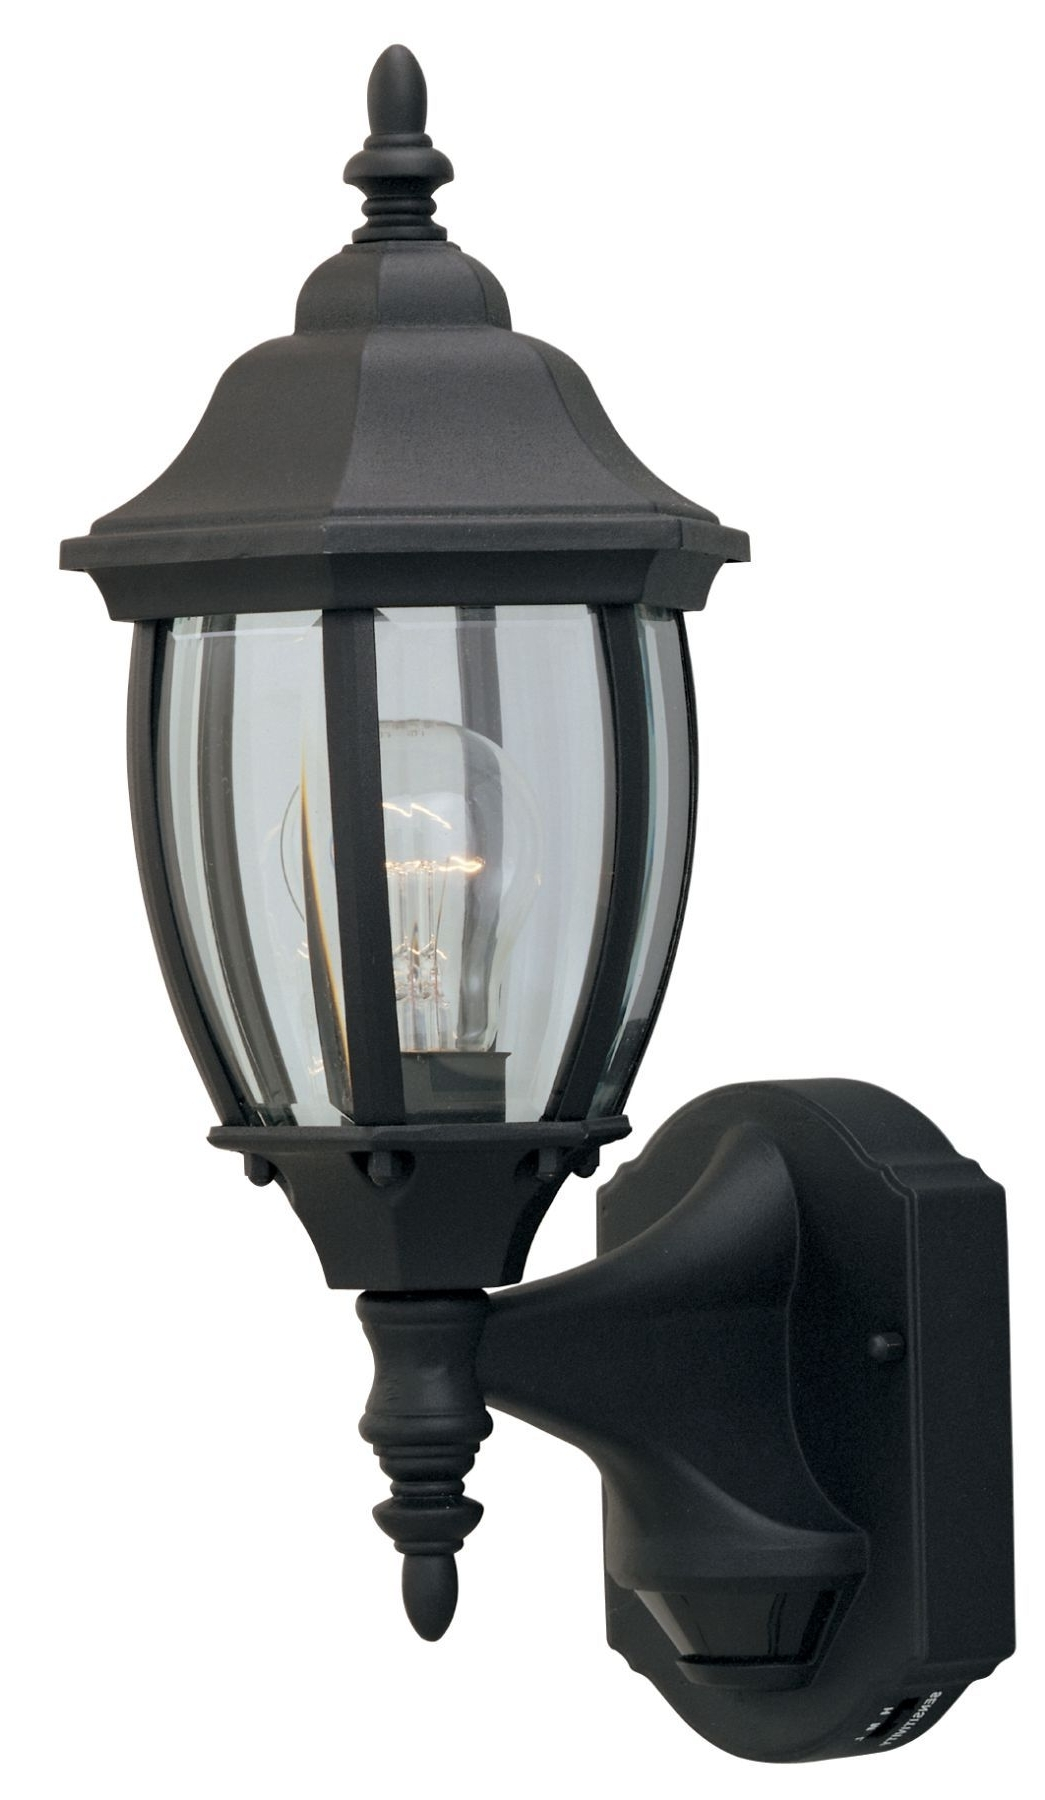 2019 Outdoor Wall Mounted Decorative Lighting Throughout Uncategorized. Decorative Outdoor Motion Sensor Light: Decorative (Gallery 10 of 20)